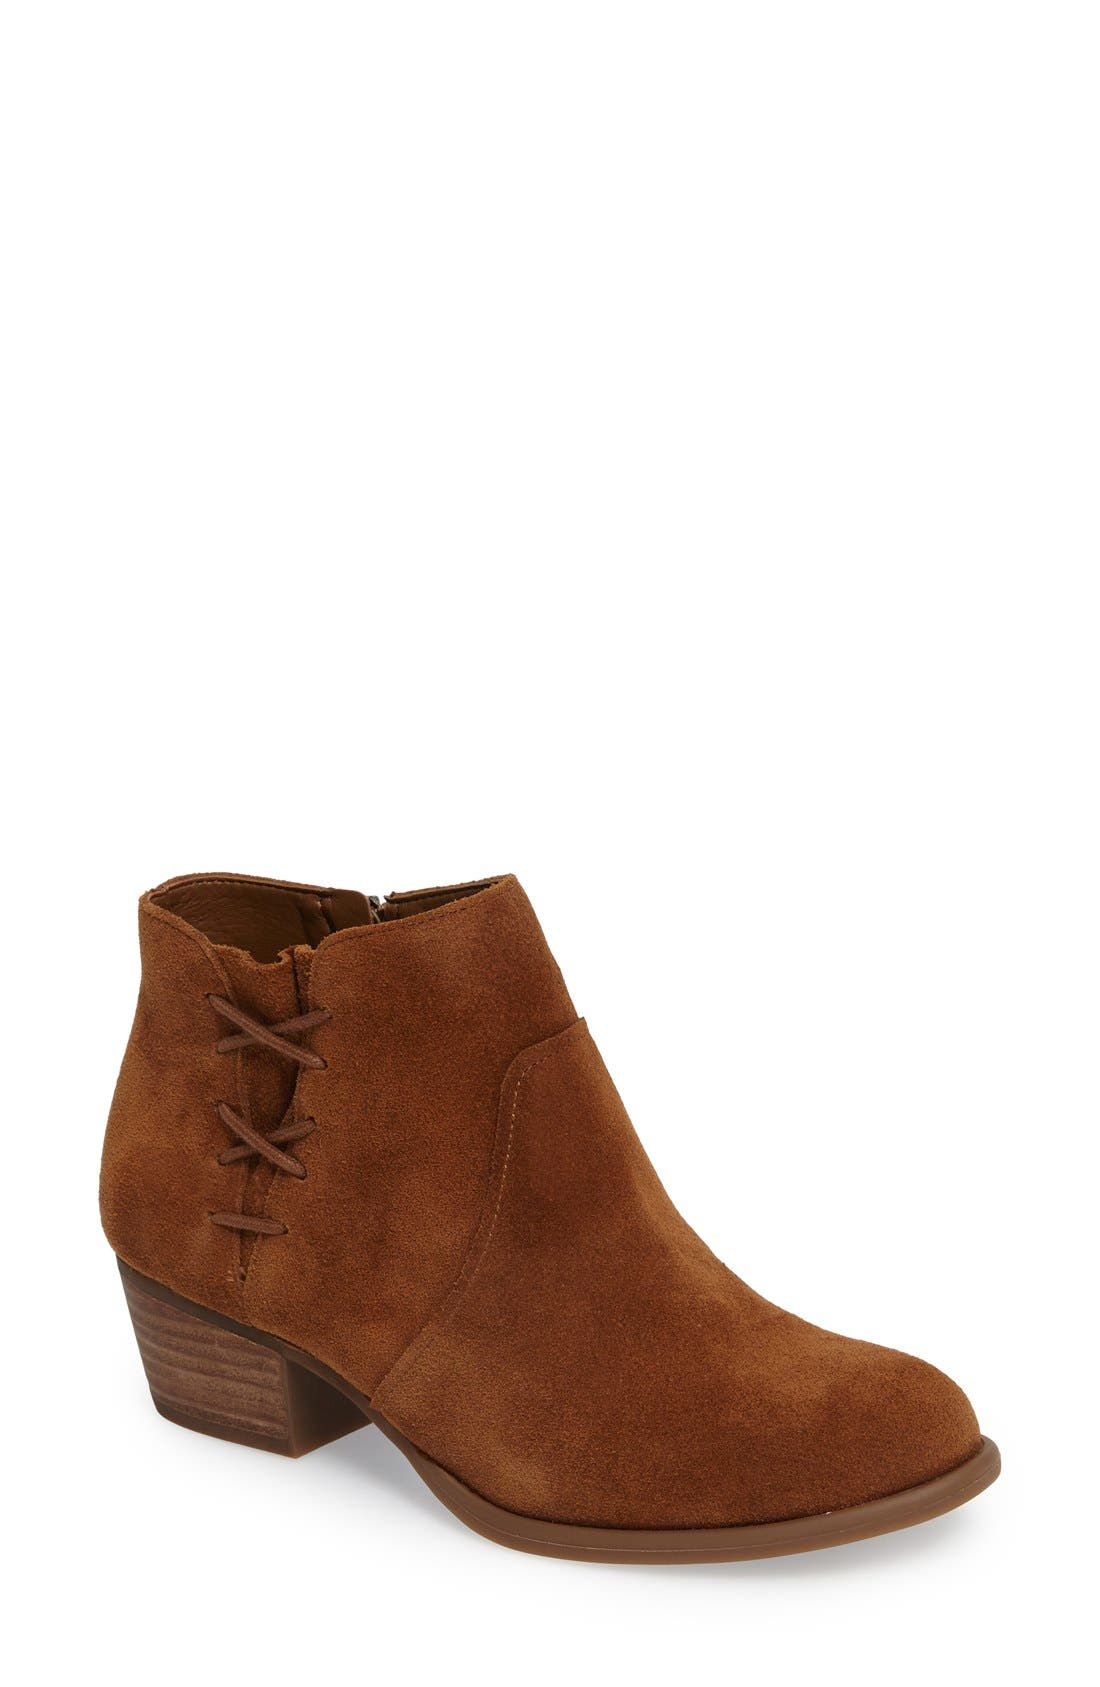 Main Image - Jessica Simpson Deonne Bootie (Women)